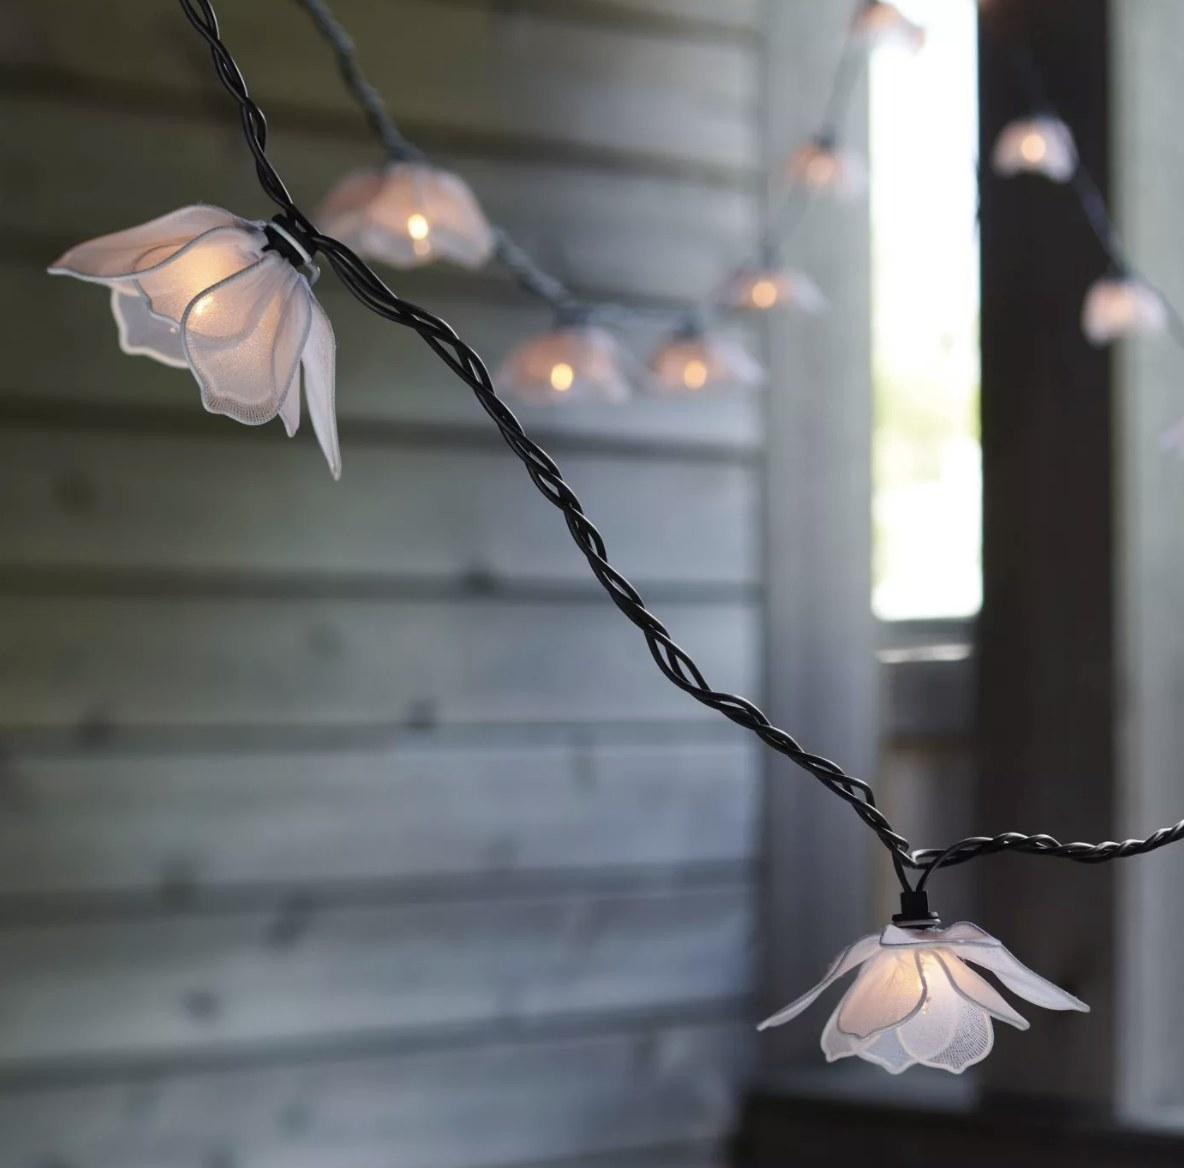 The white flowers are on a black cord and give of warm lighting